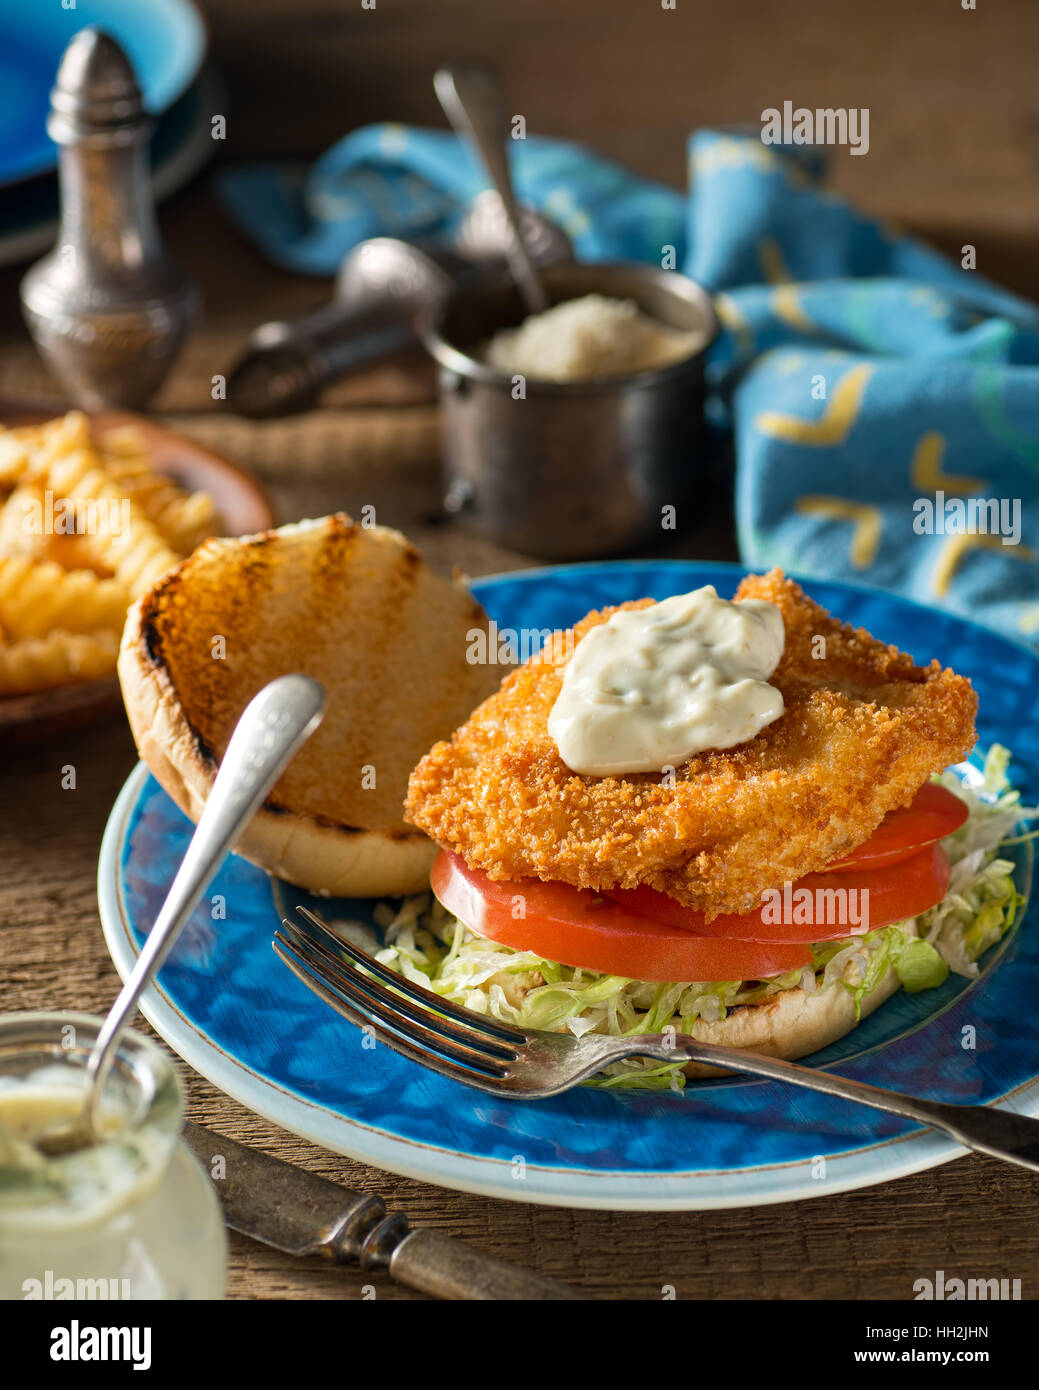 A delicious home made fish burger with lettuce, tomato, and tartar sauce. - Stock Image